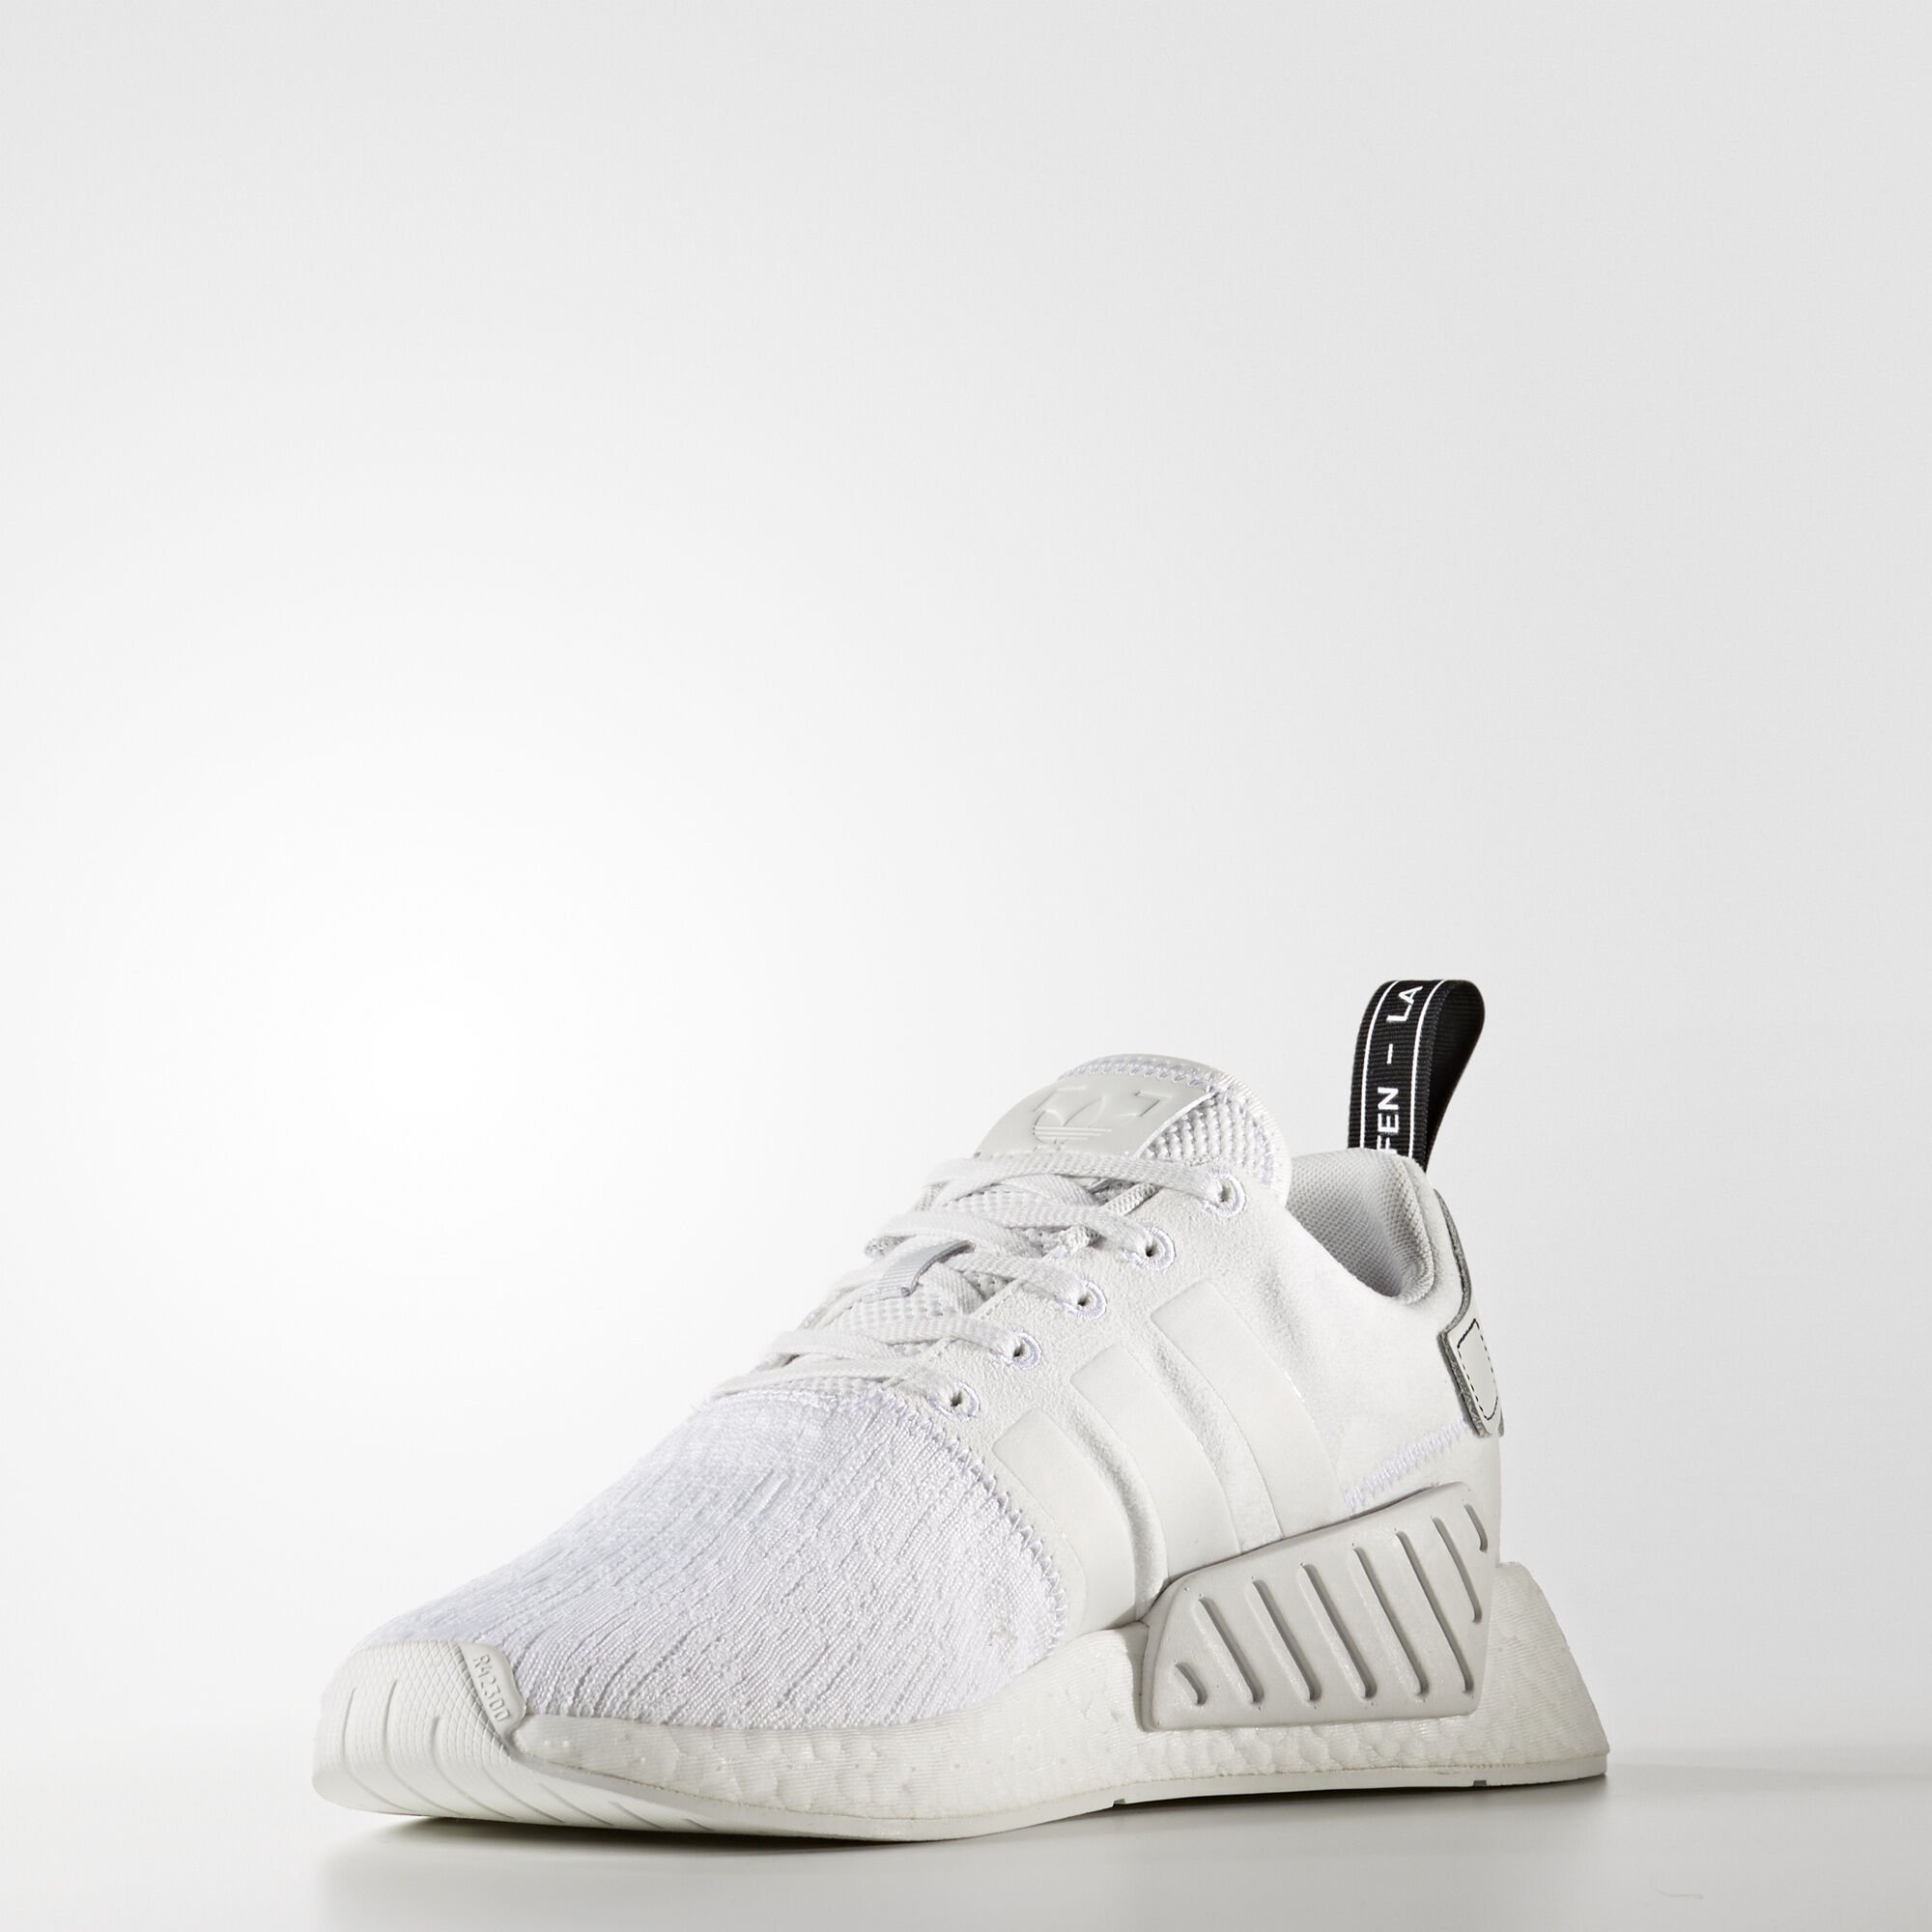 adidas NMD R2 Crystal White (BY9914)